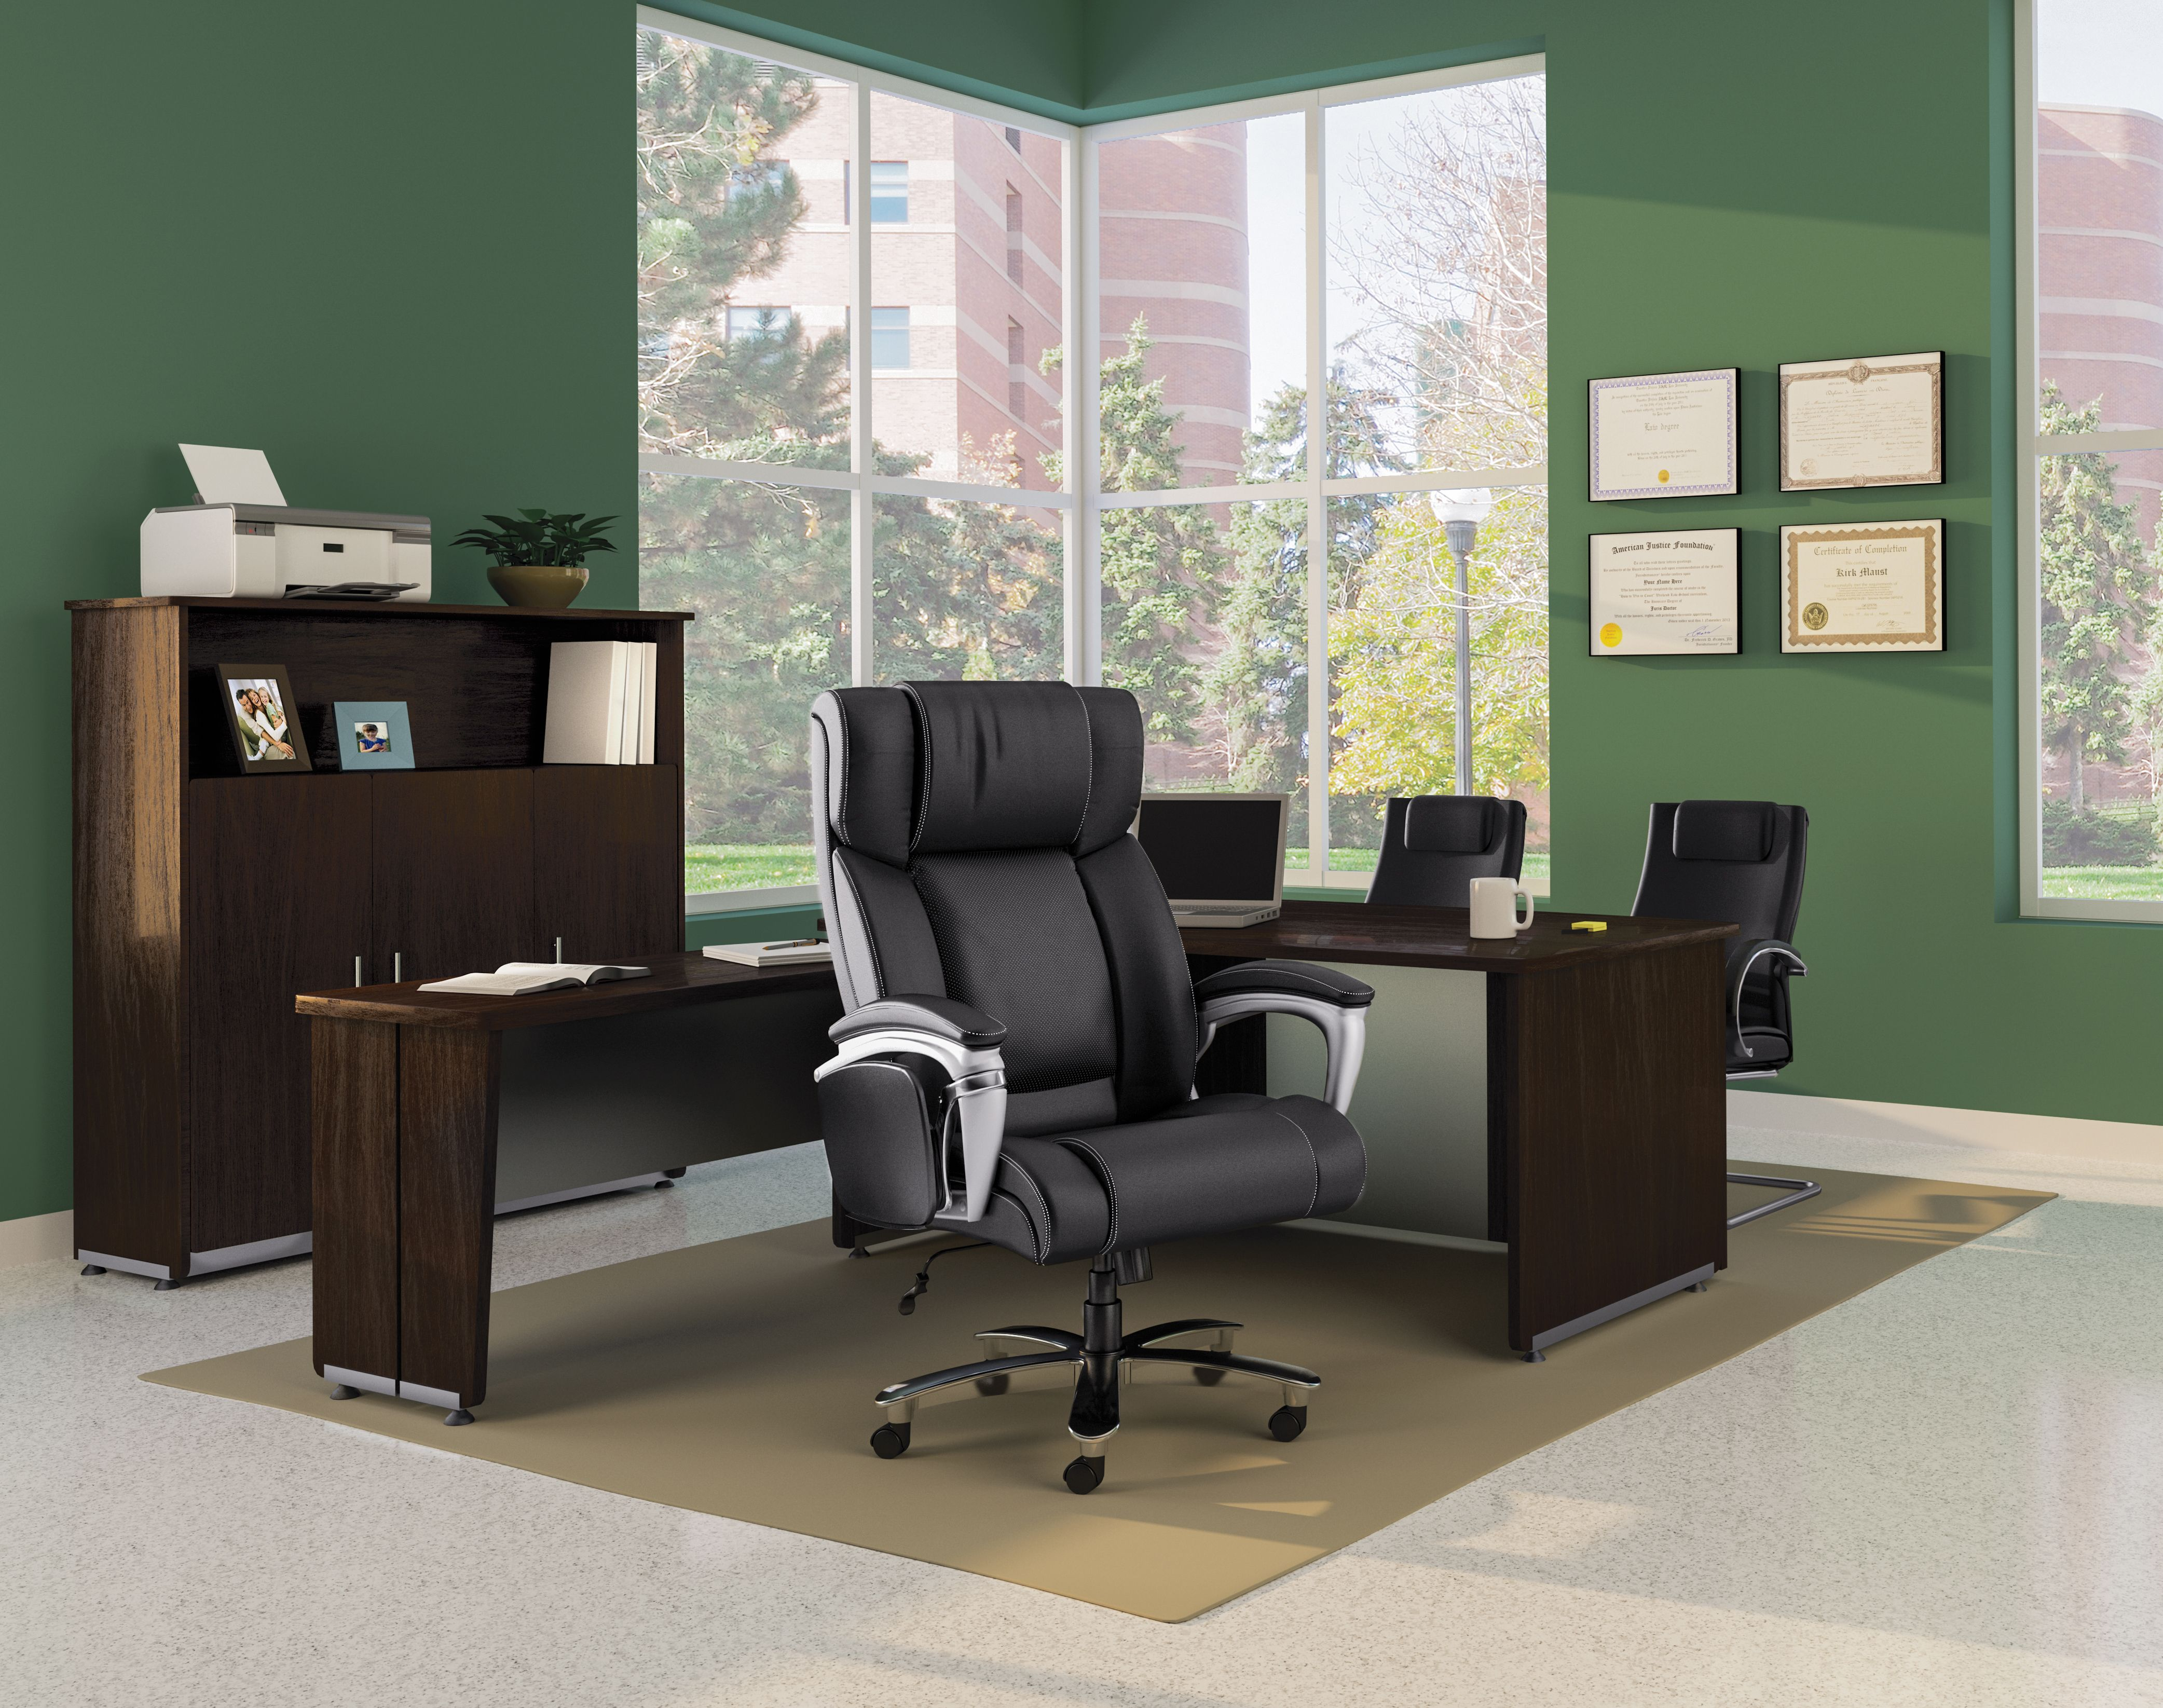 office suites at the pro level executive office suites pinterest office suite and executive suites